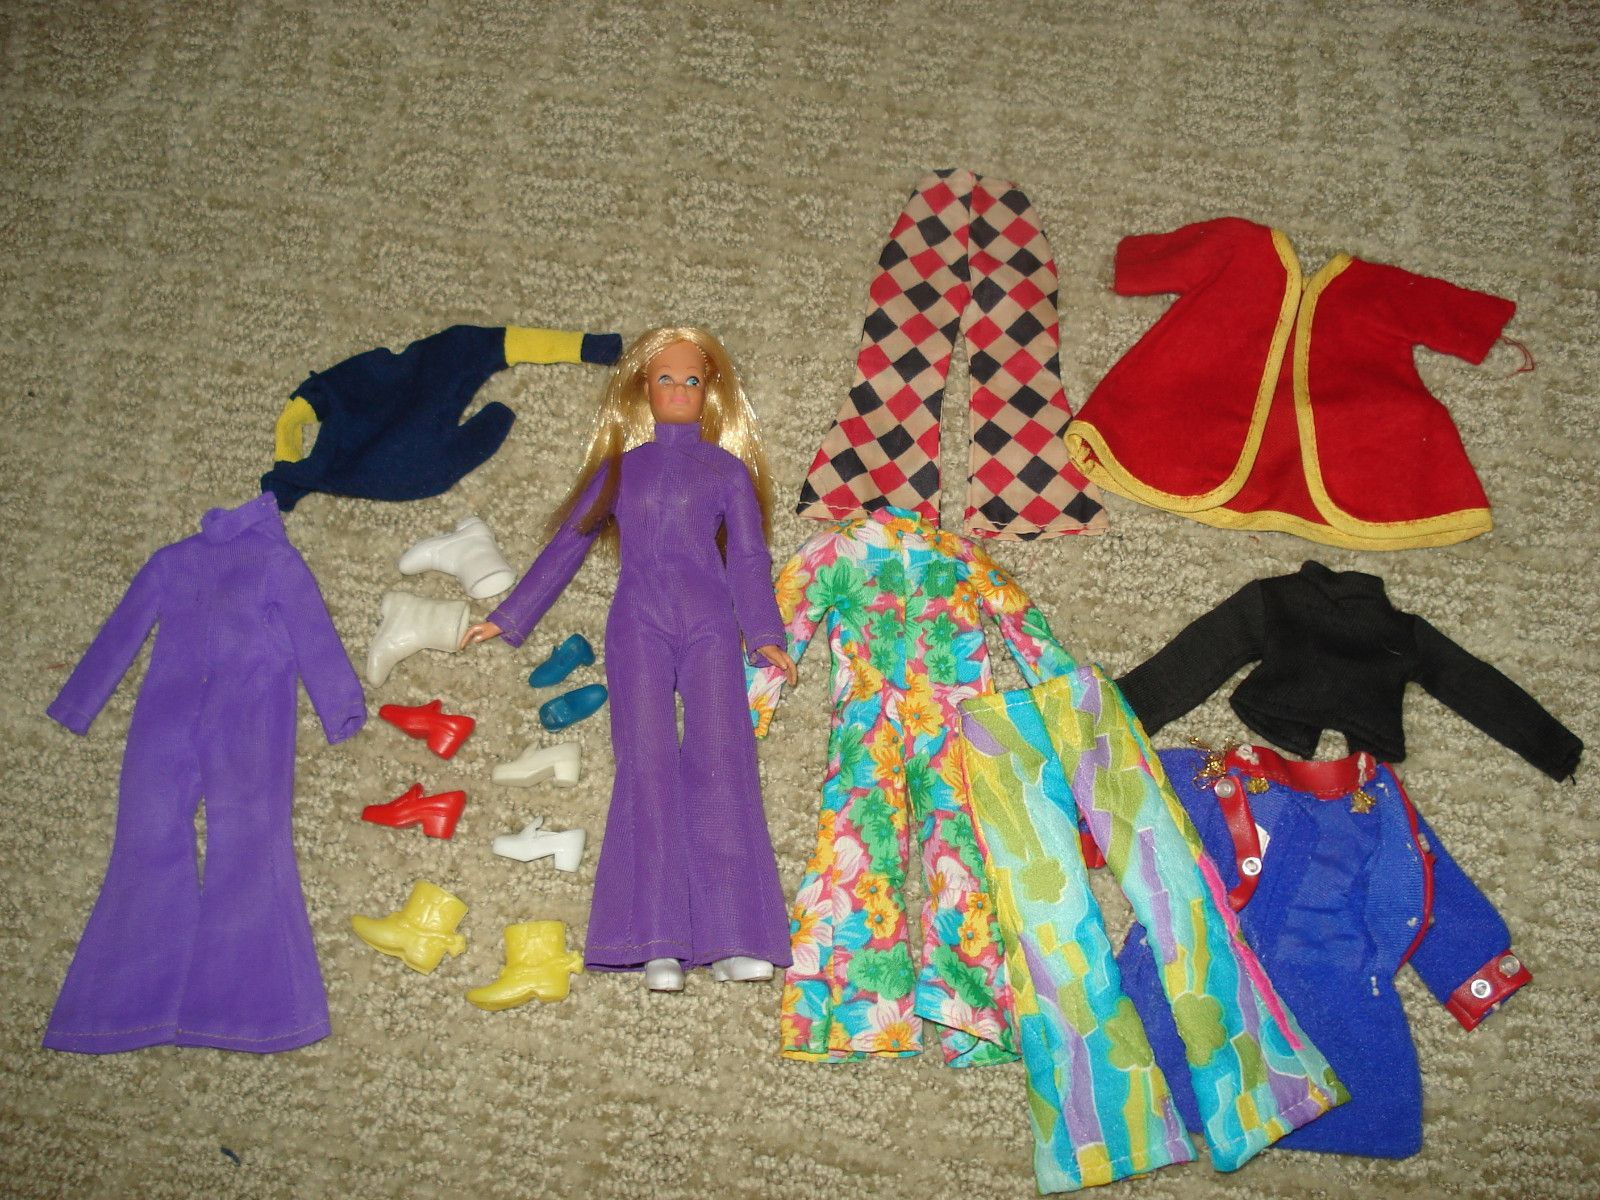 Dinah-Mite and her wardrobe.